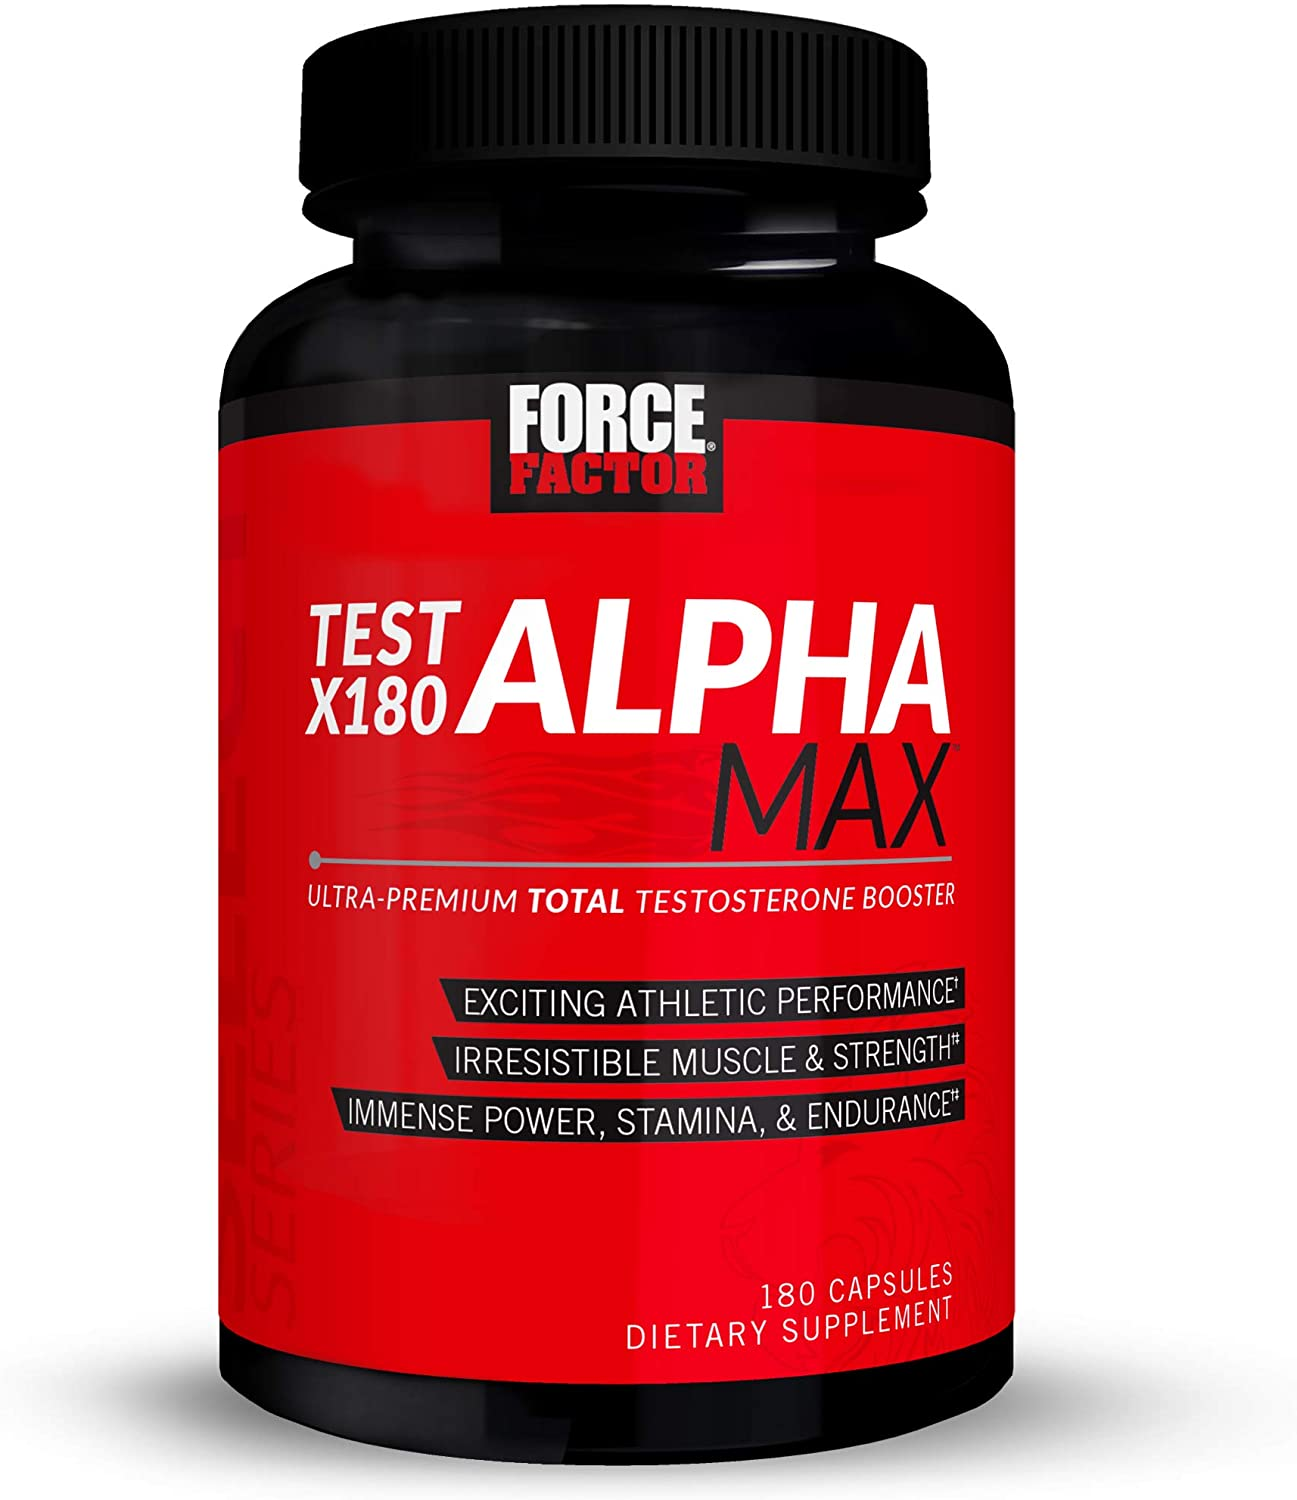 Test X180 Alpha Max, Nitric Oxide Booster, Lean Muscle Builder for Men with Testofen, L-Citrulline, Tribulus Terrestris, and Black Maca, Force Factor, 180 Capsules